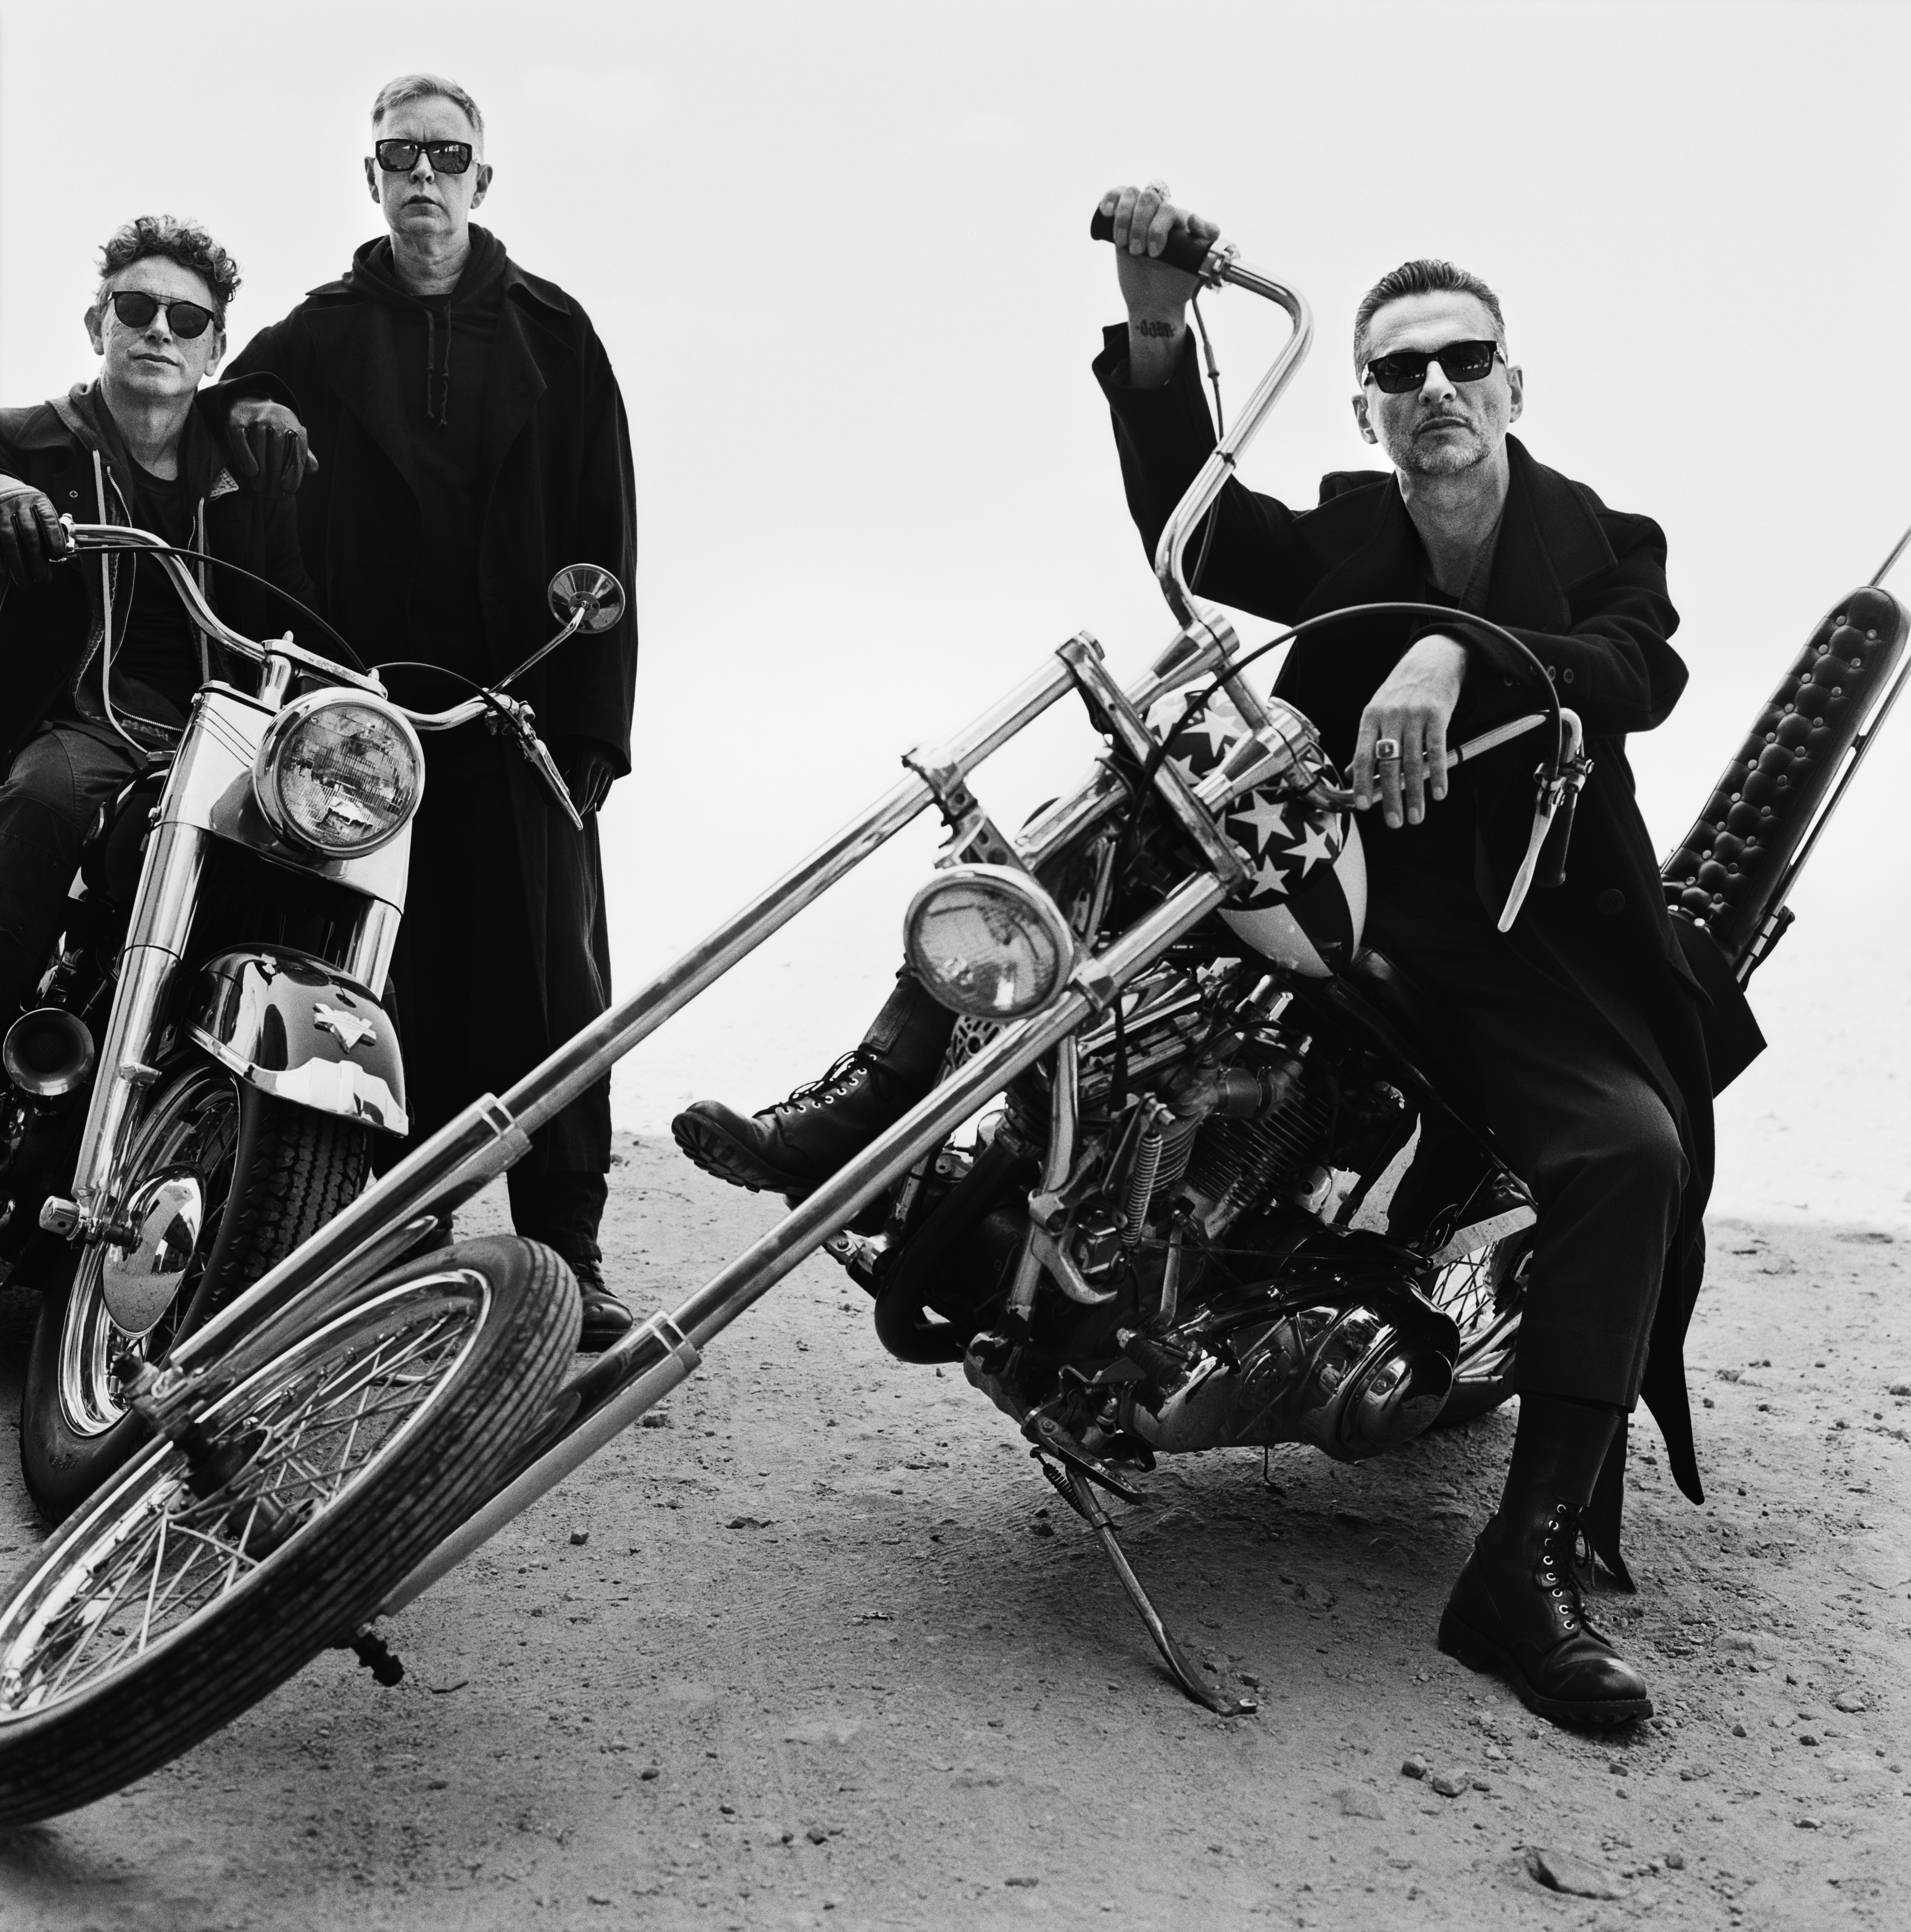 depeche mode new york 21 07 2016 21 Depeche Mode's Martin Gore and Andy Fletcher Explain How to Save the World